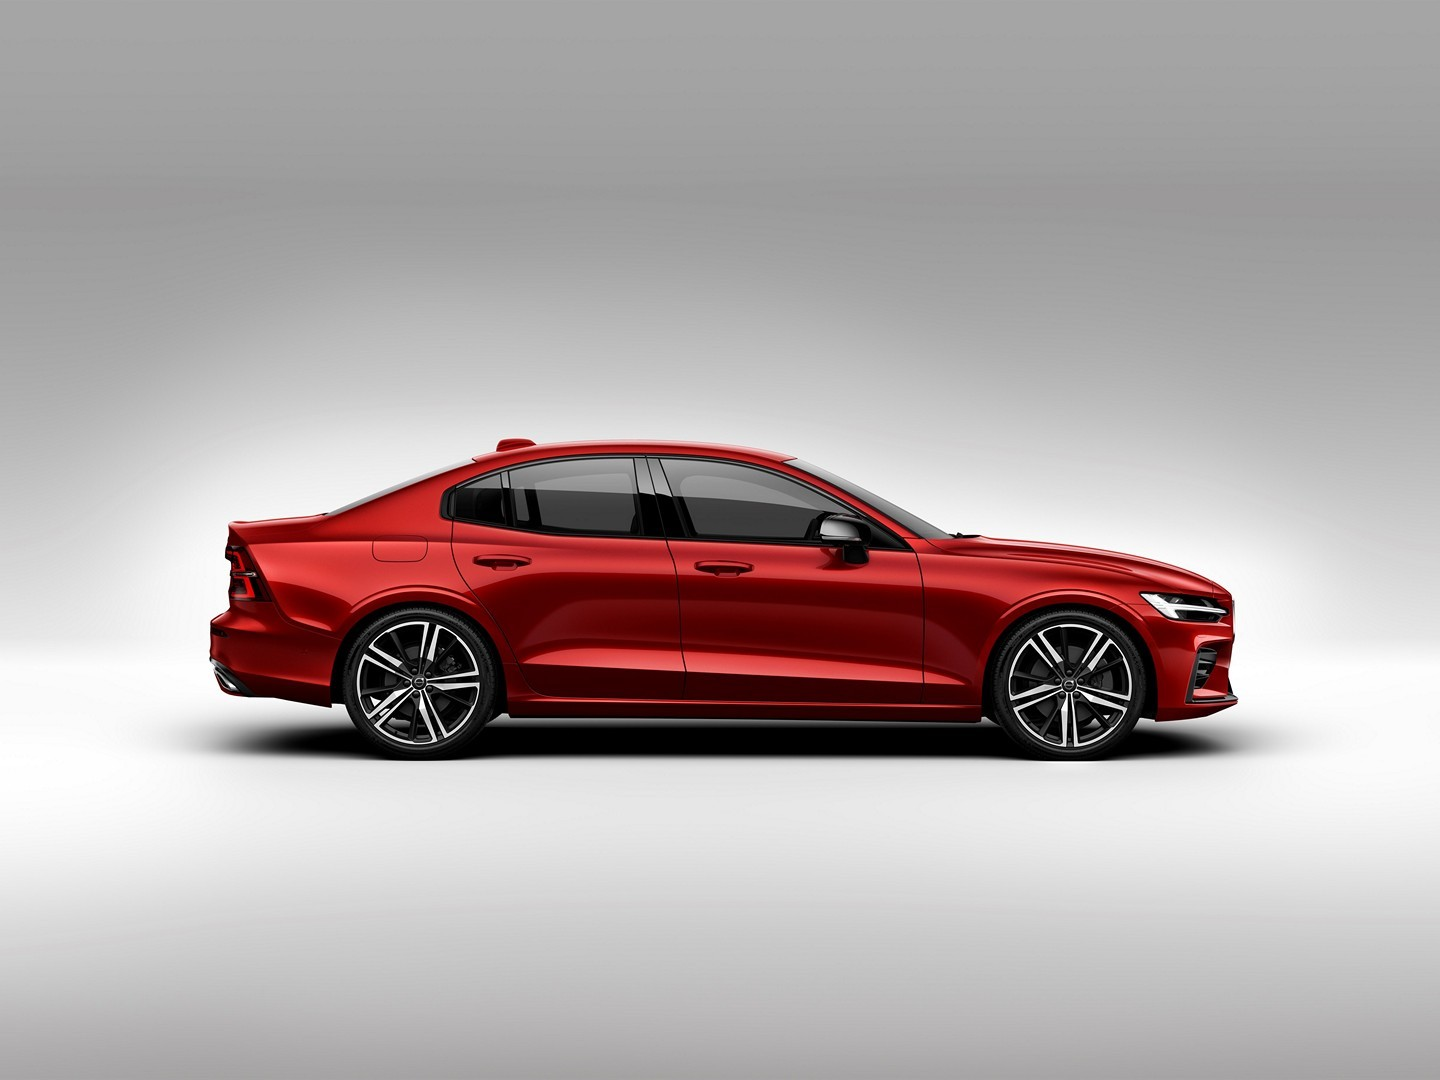 2019 volvo s60 u s  configurator goes online  old model lives on as s60 classic